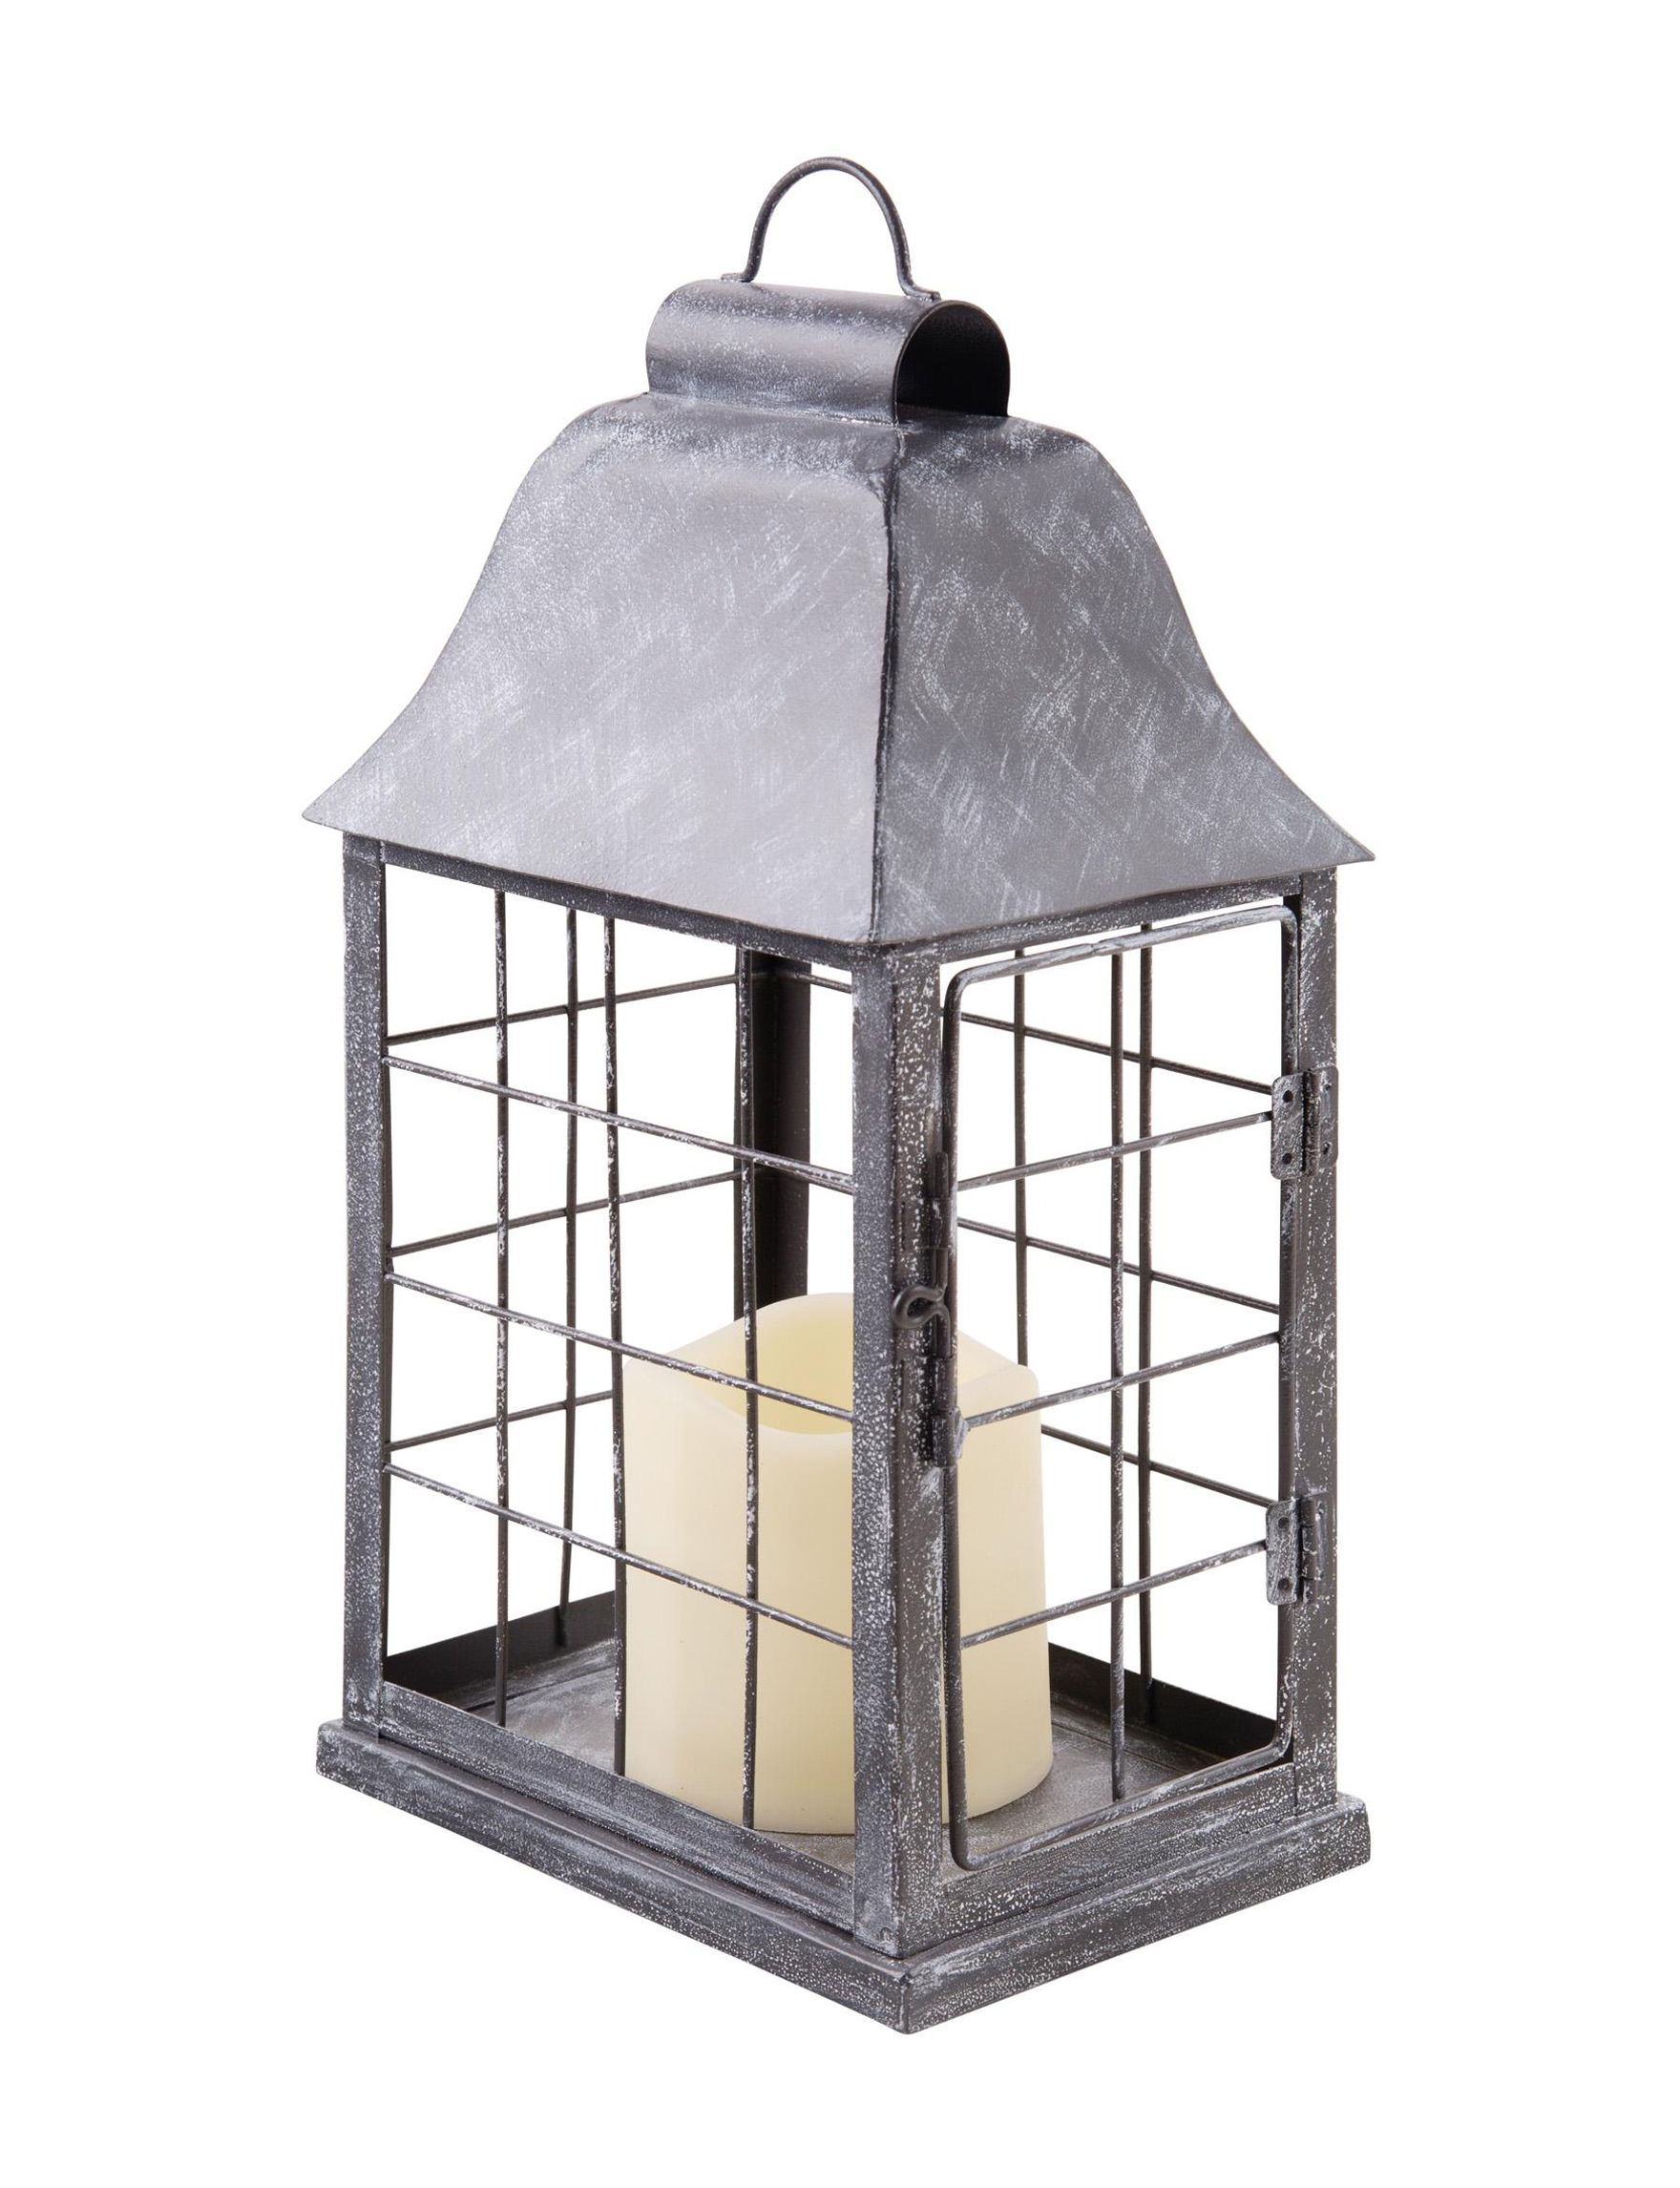 Home Essentials Grey Candle Holders Lights & Lanterns Lighting & Lamps